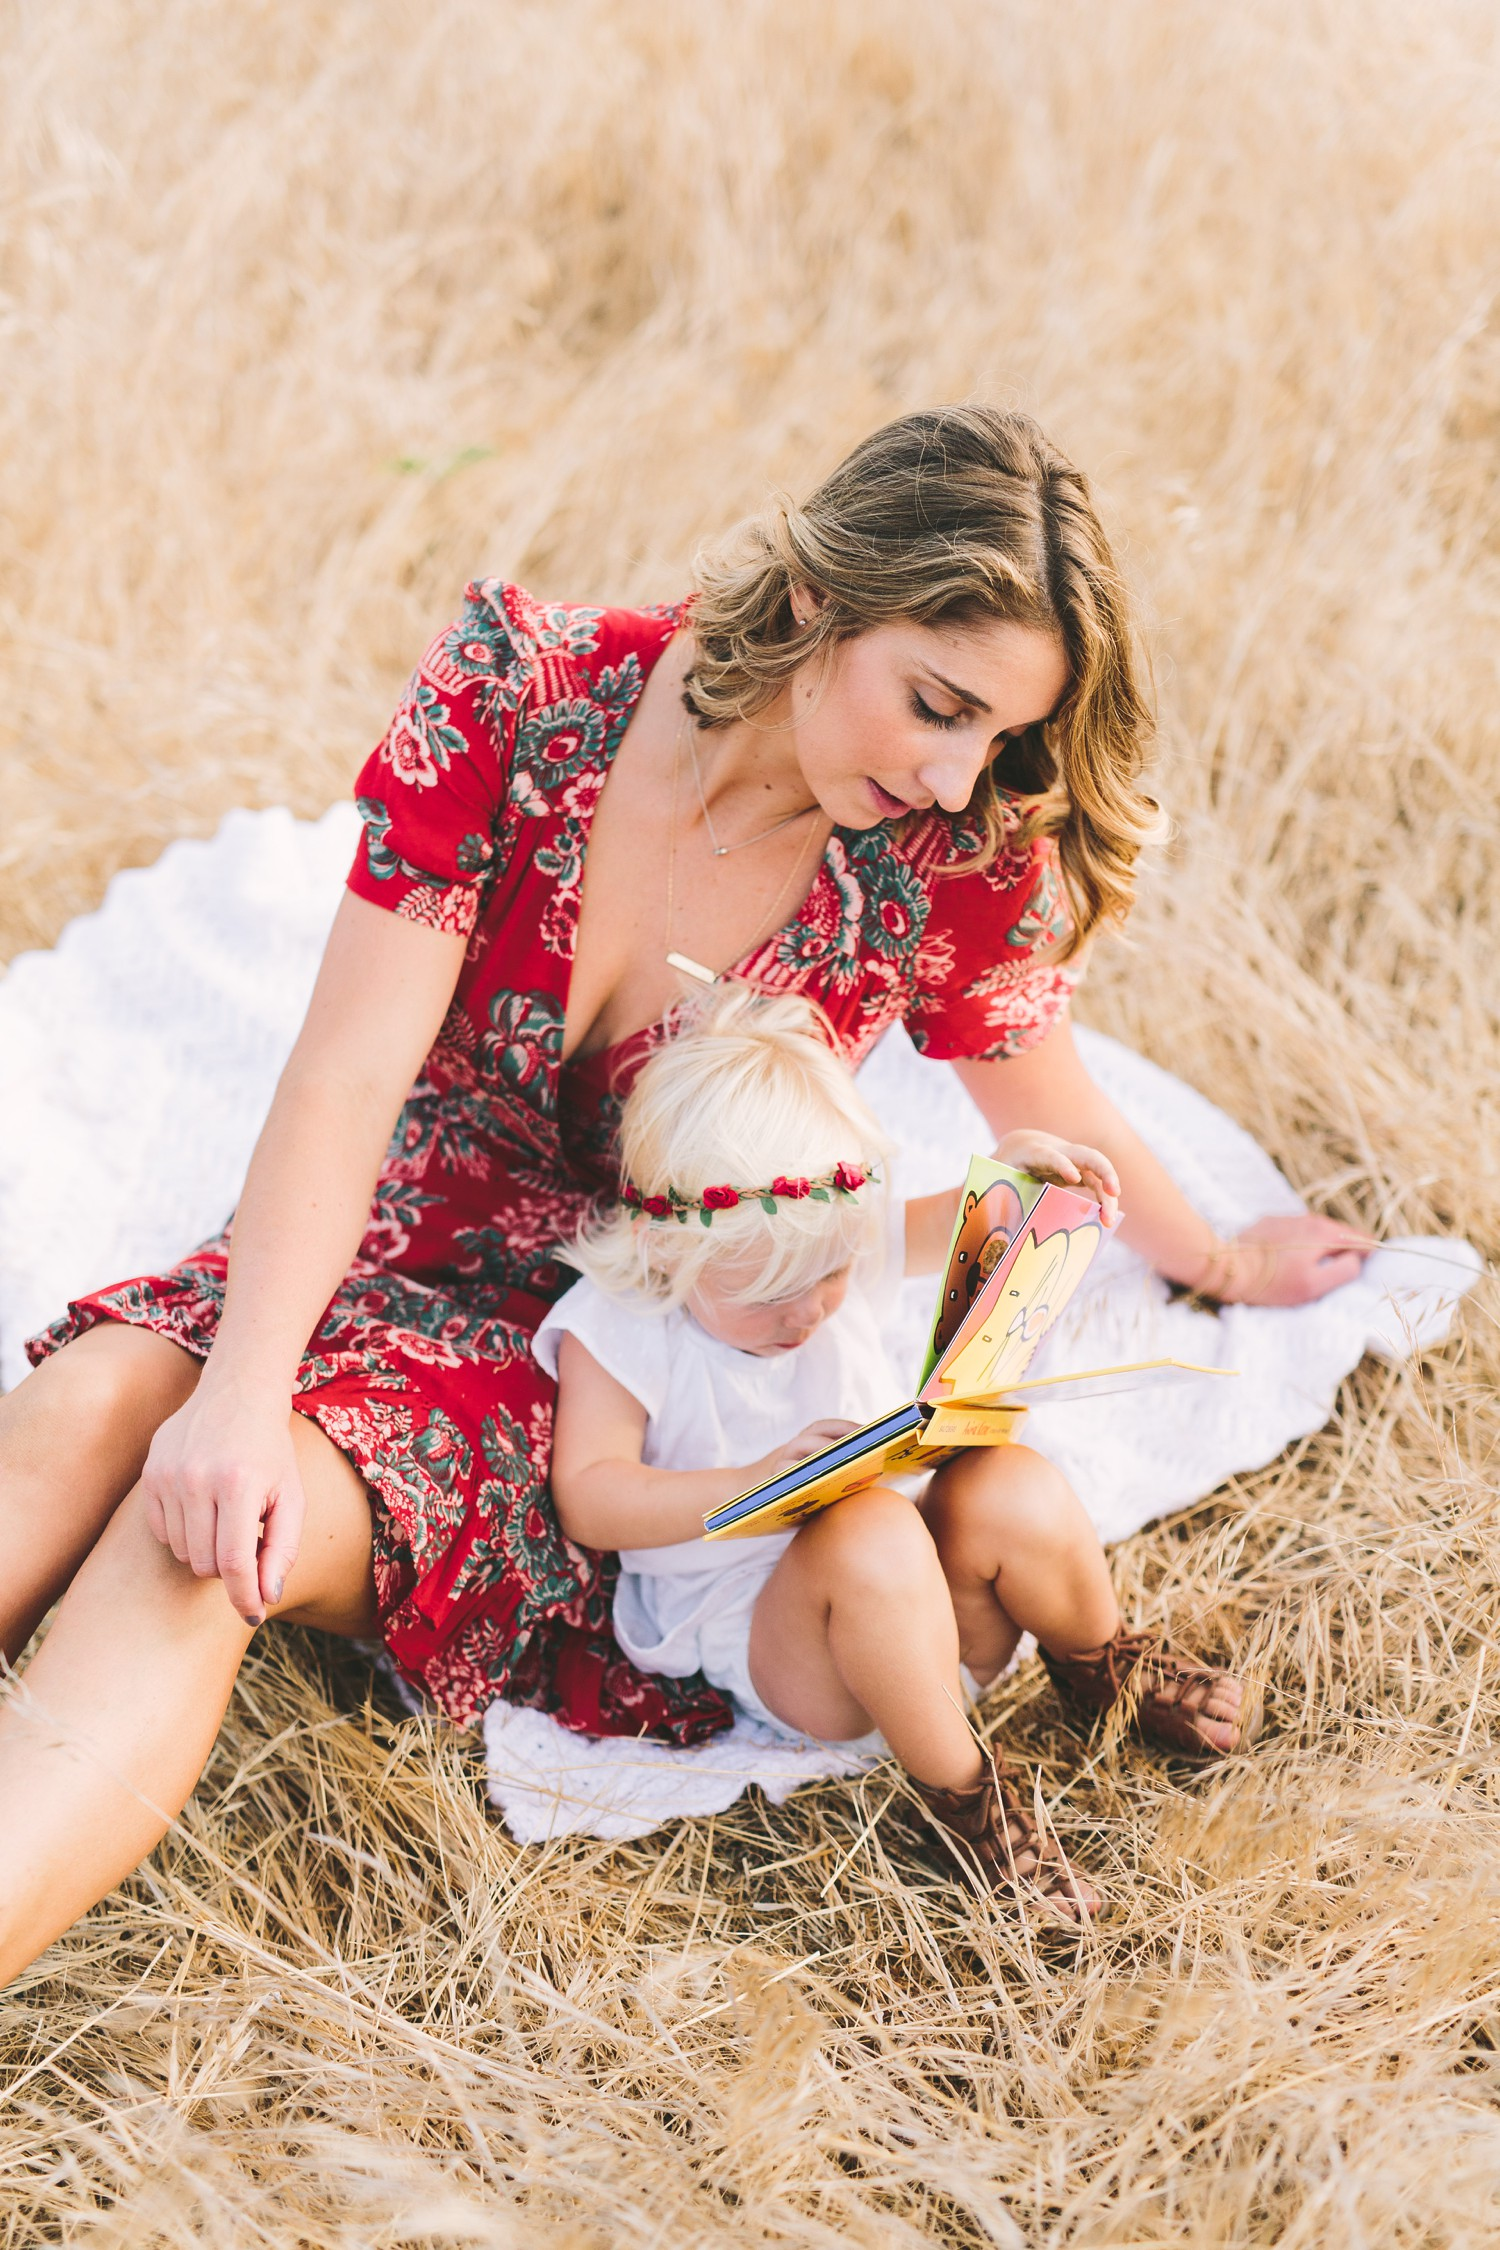 sunset-field-family-mother-daughter-14_web